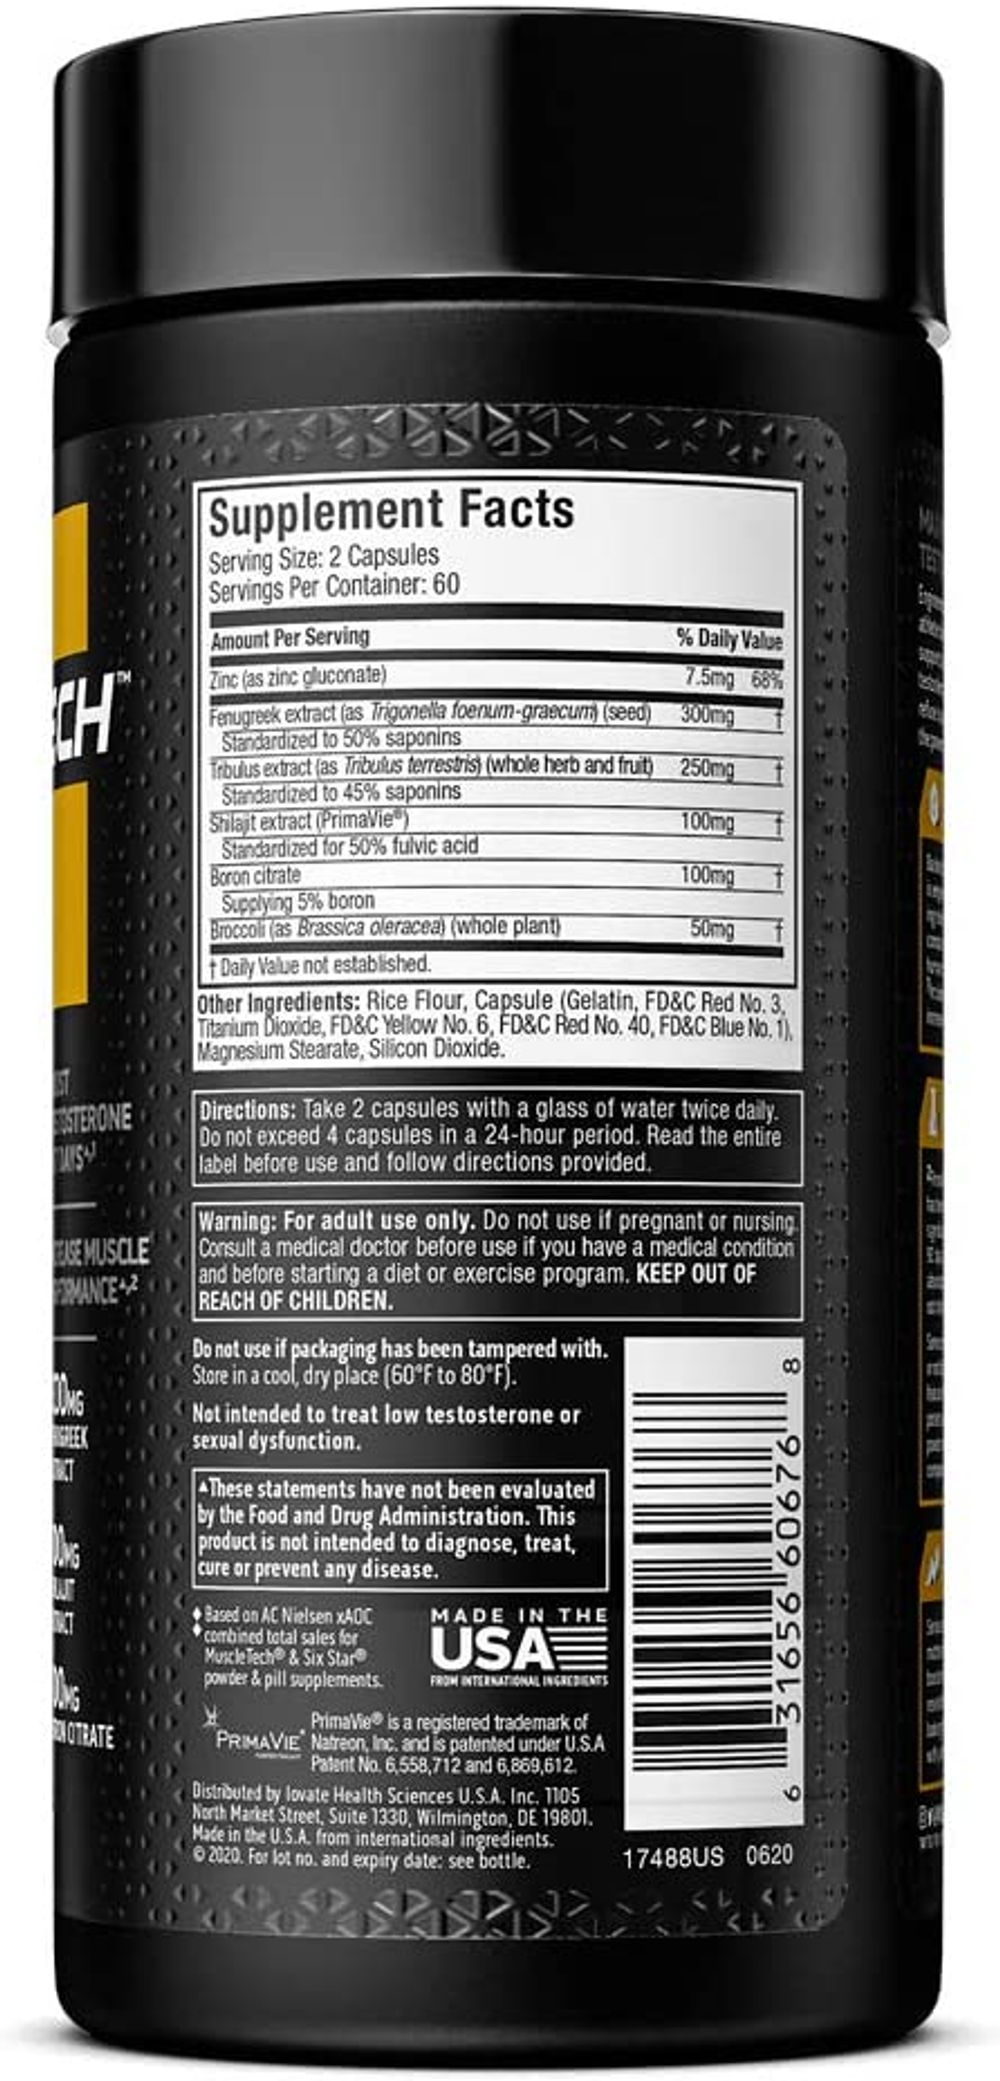 Testosterone Booster for Men | MuscleTech AlphaTest | Tribulus Terrestris & Boron Supplement | Max-Strength ATP & Test Booster | Daily Workout Supplements for Men, 120 Pills (Package May Vary)